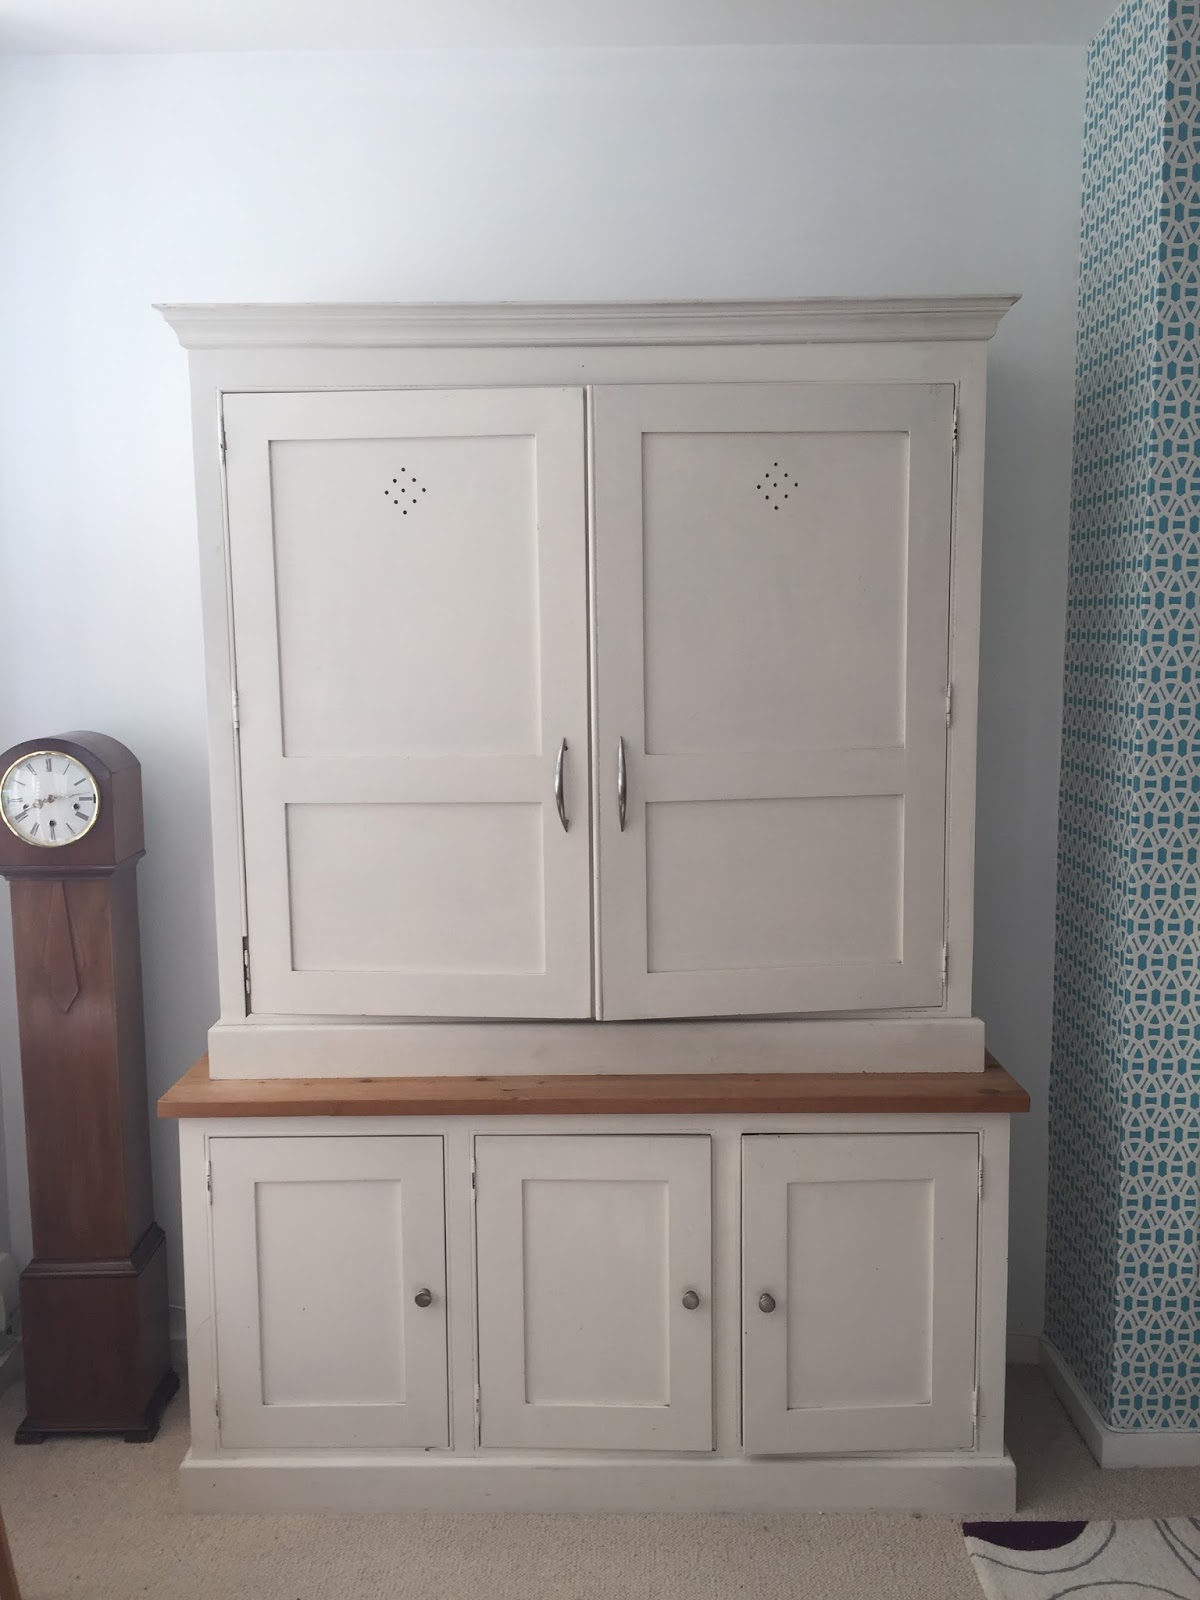 John Lewis Kitchen Furniture Style Guile An Interiors Post Upcycling A Dresser From The